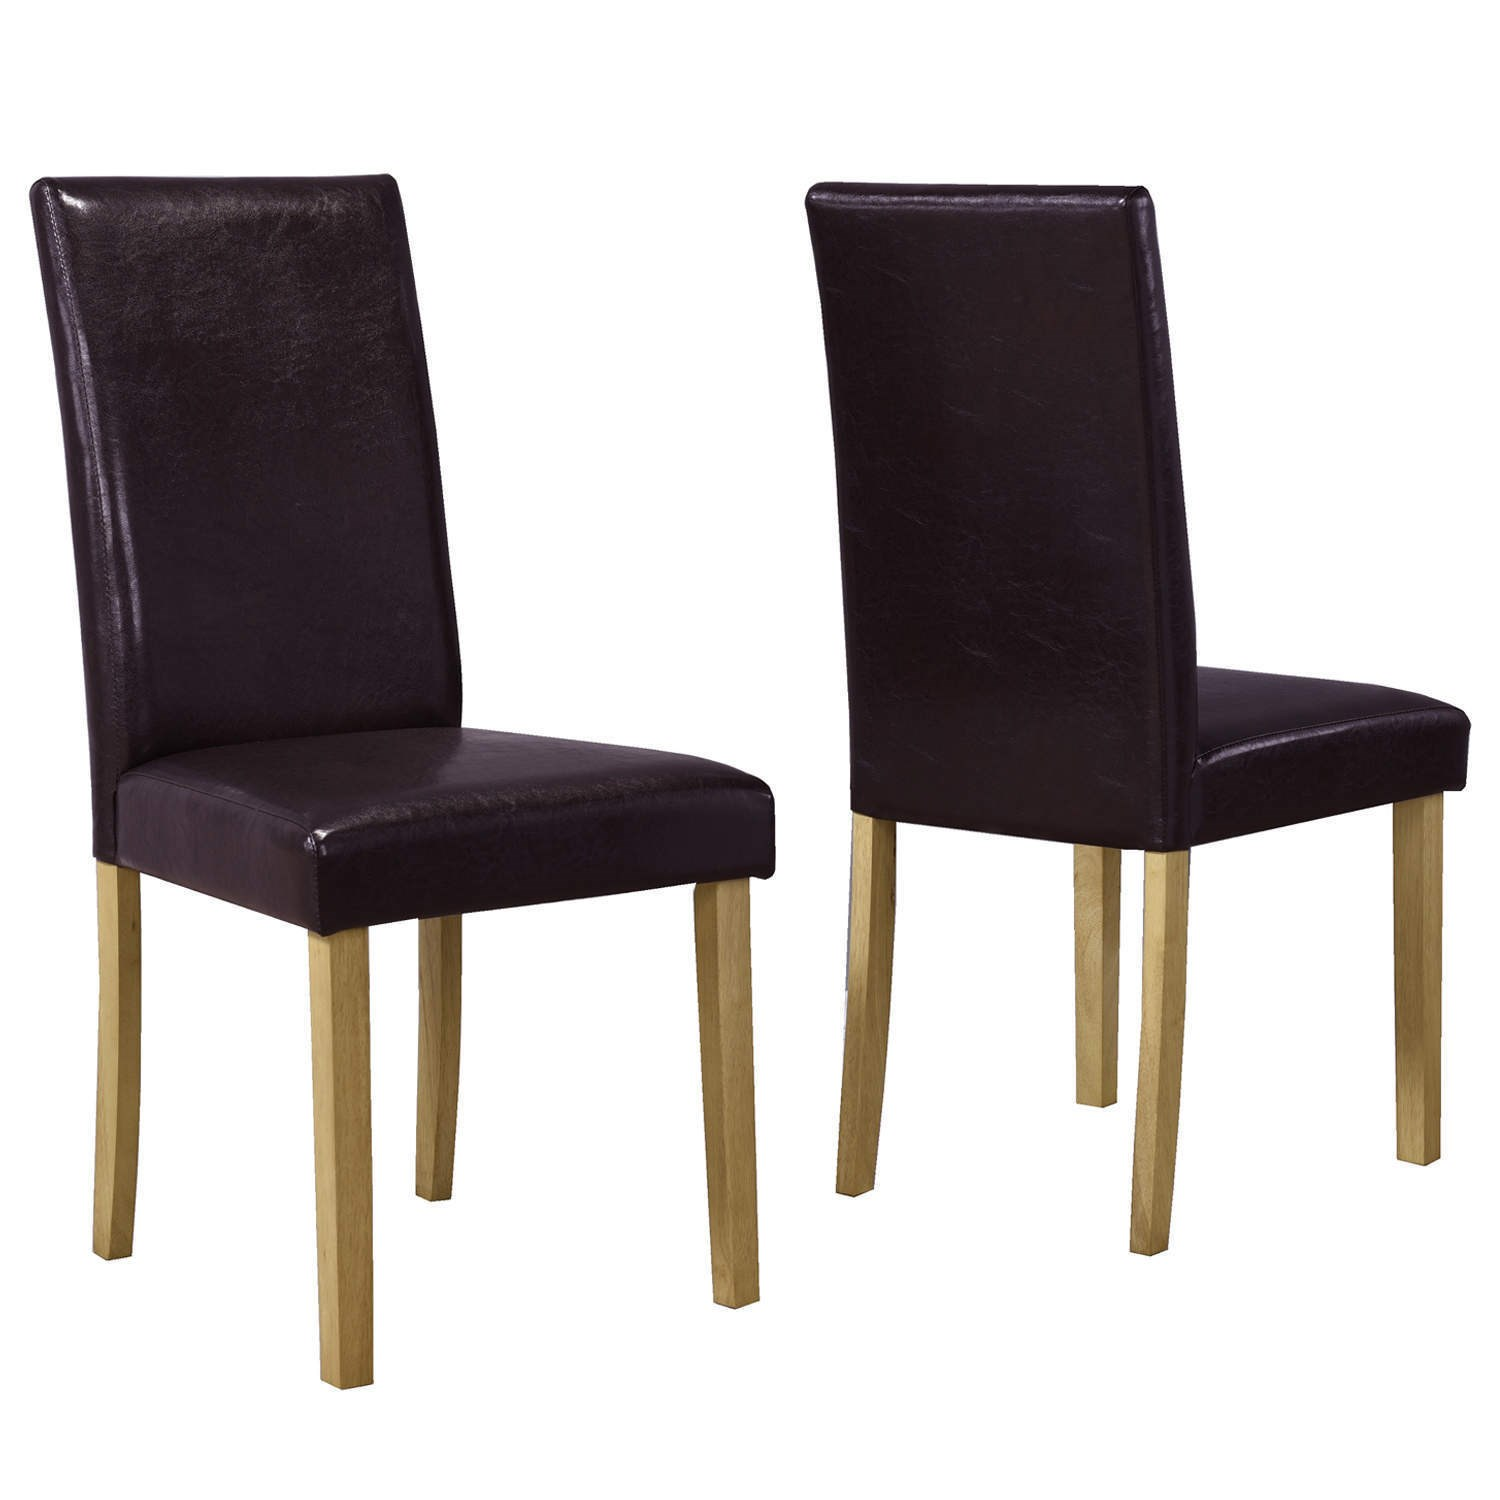 Brown Pair of Faux Leather Dining Chairs with Wooden Legs ...